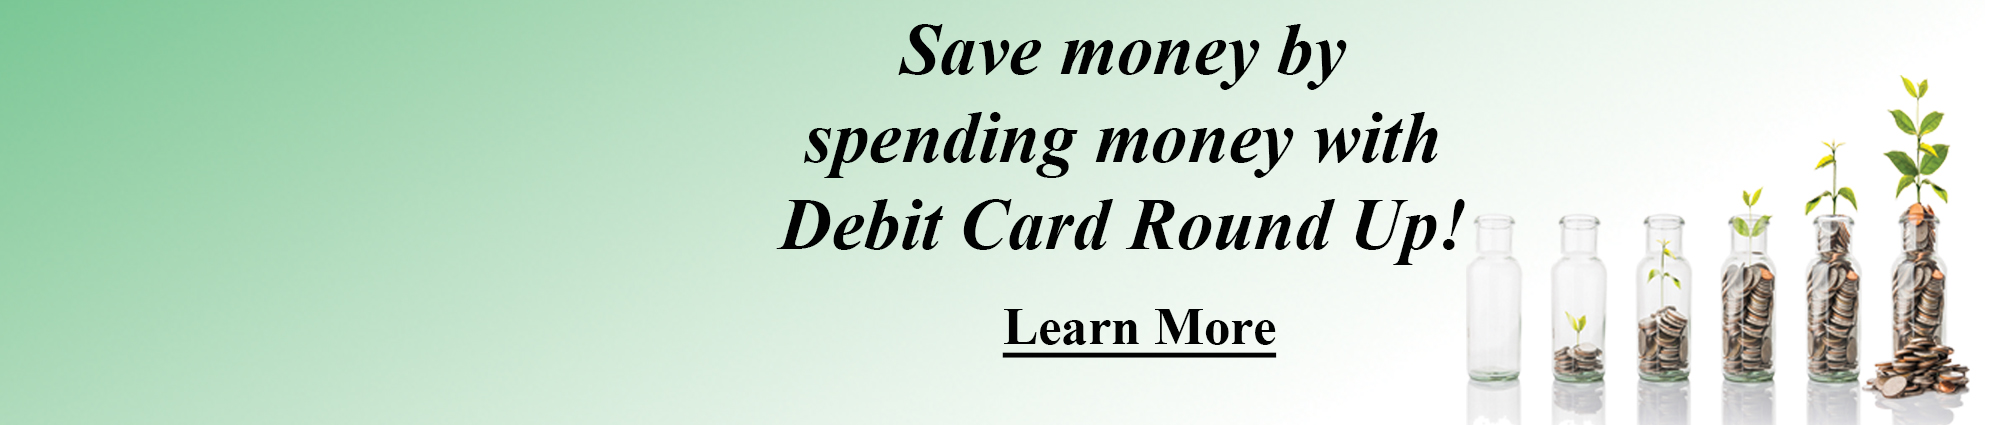 Save money by spending money with Debit Card Round Up! Click to learn more.